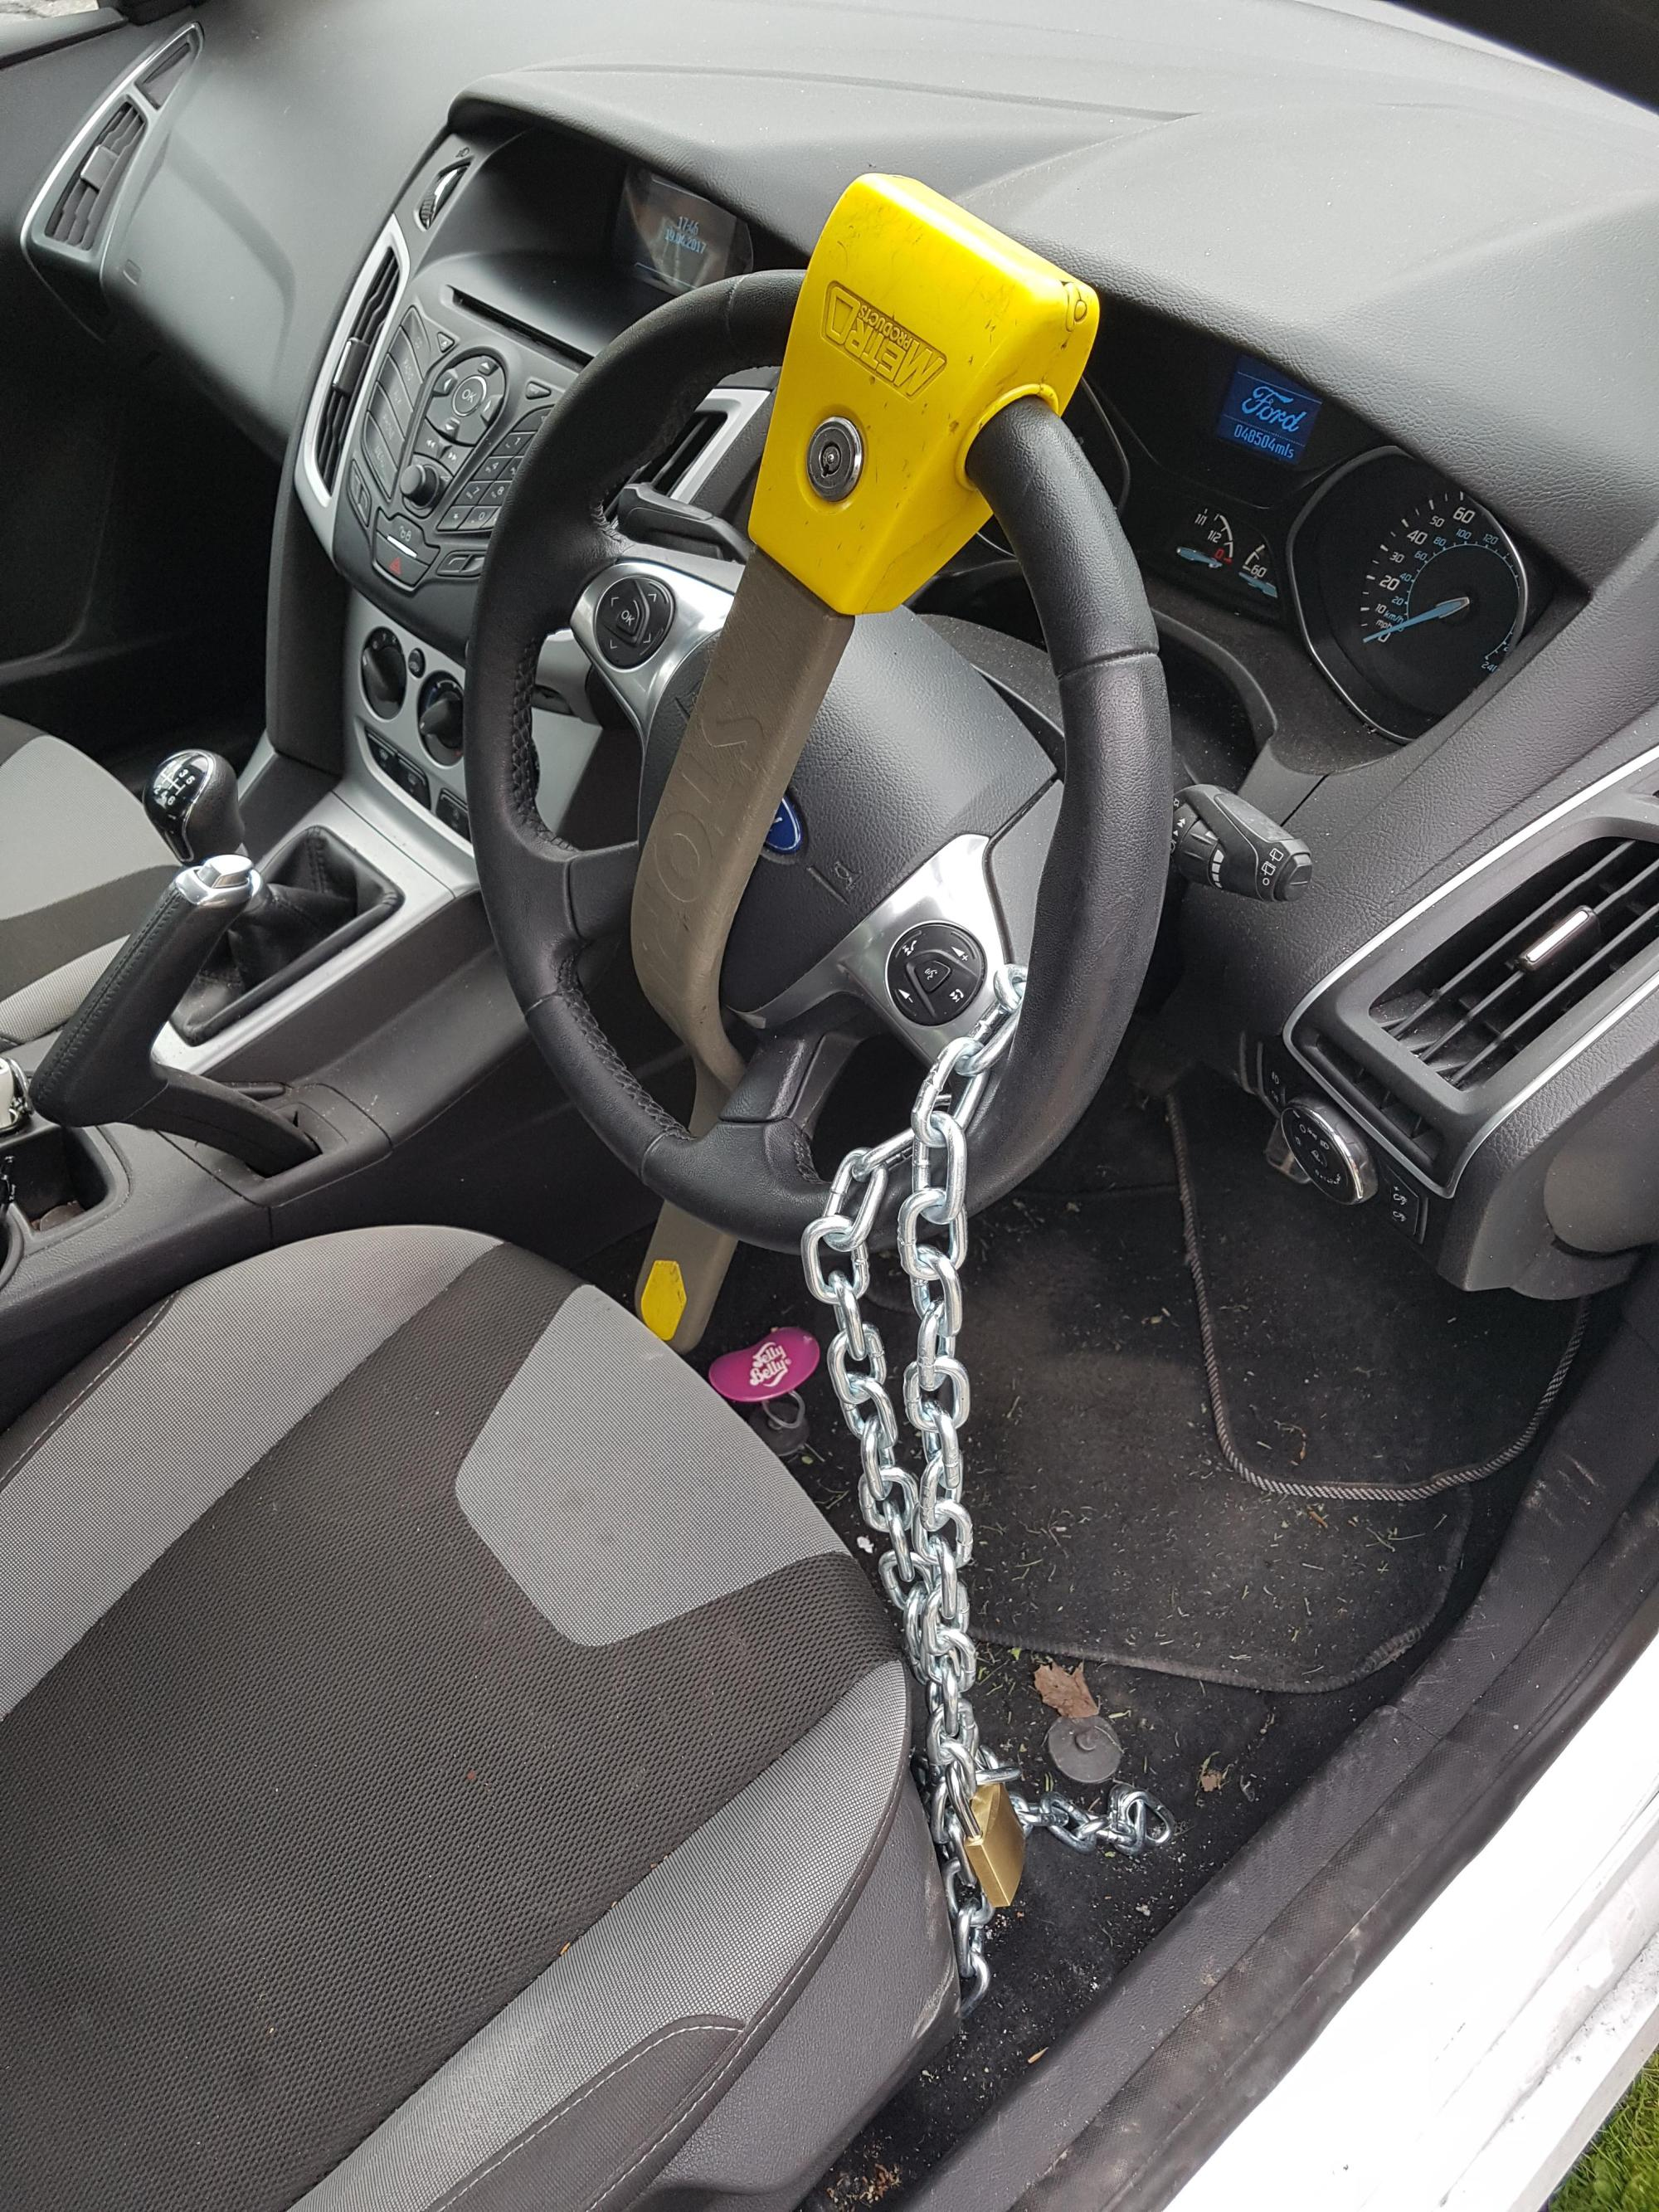 hight resolution of matt smith has started to take extreme safety measures including chaining up his steering wheel